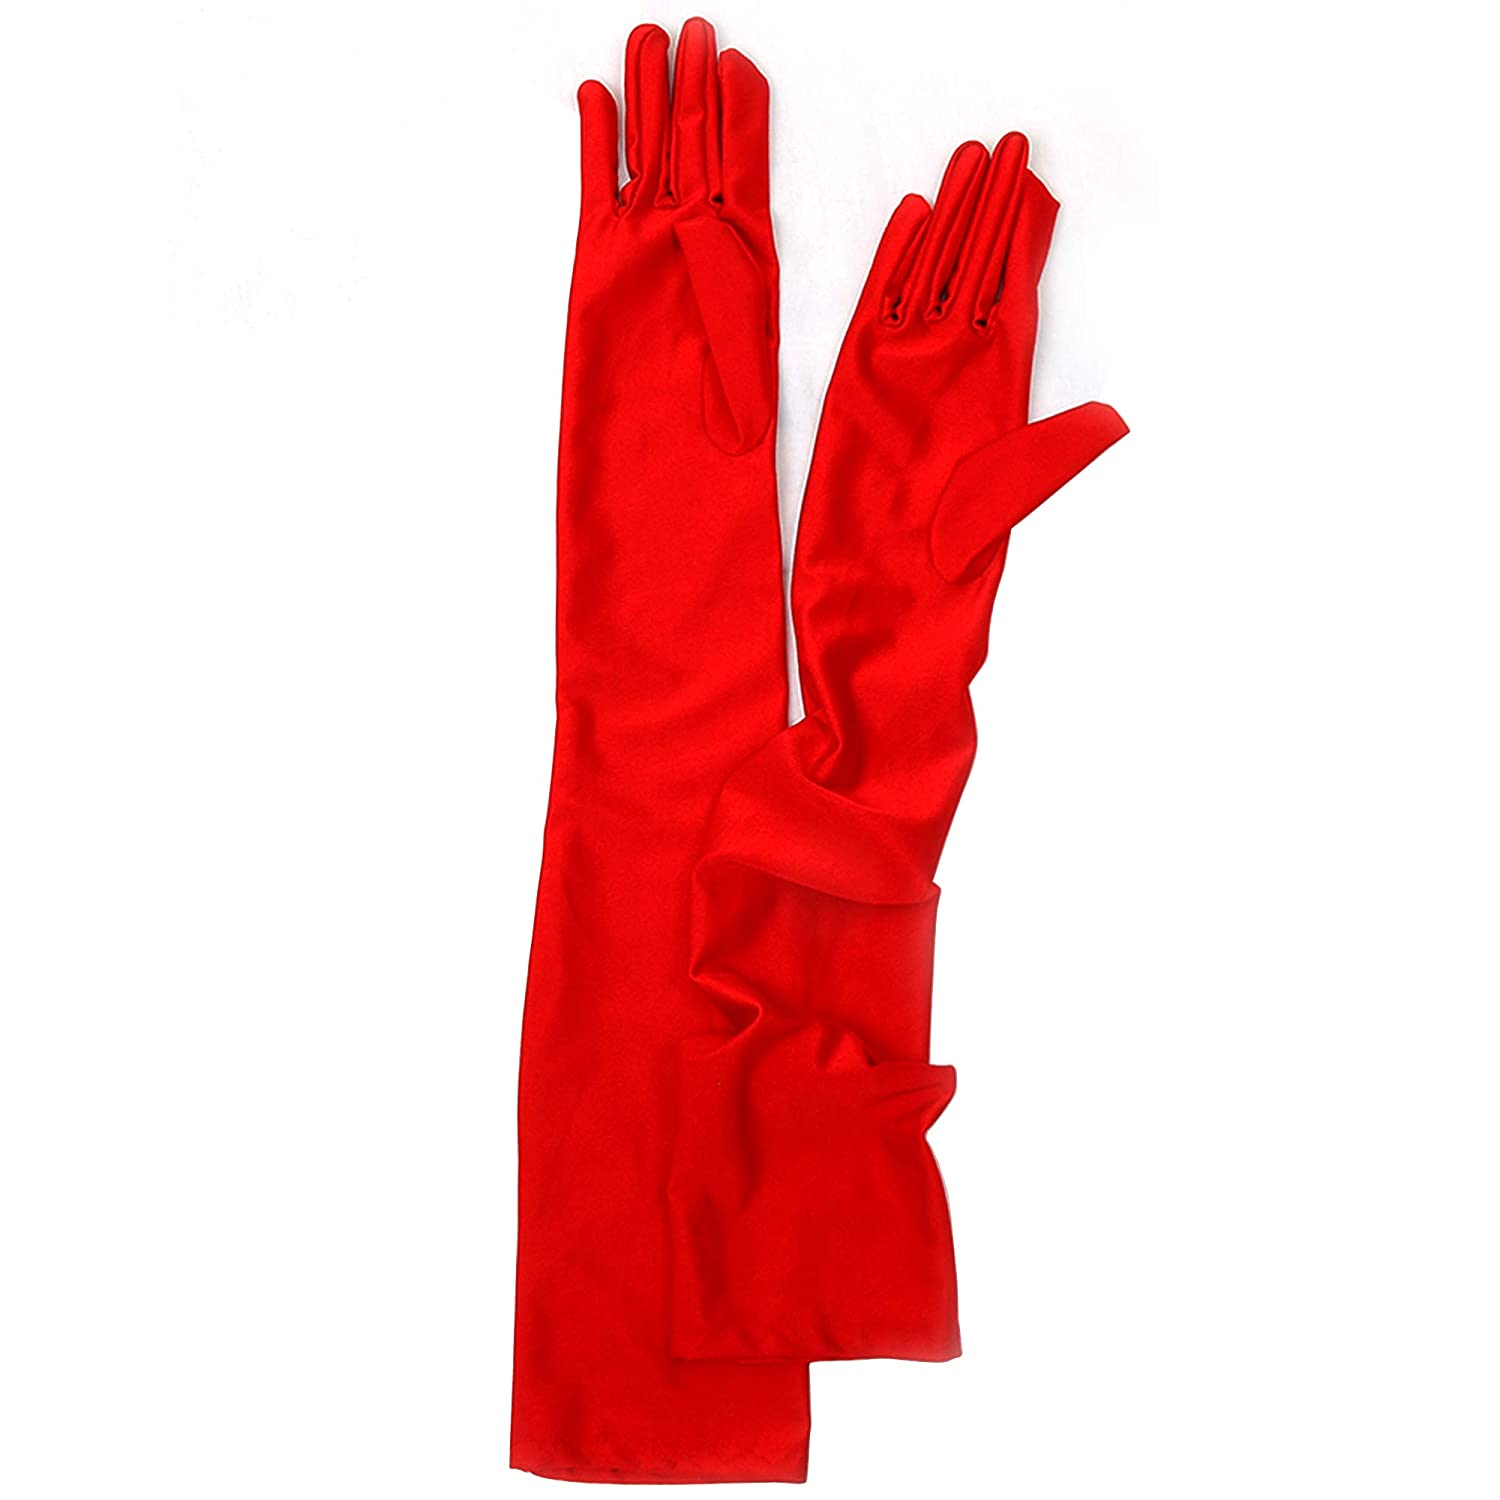 Skeleteen Red Satin Opera Gloves - Roaring 20